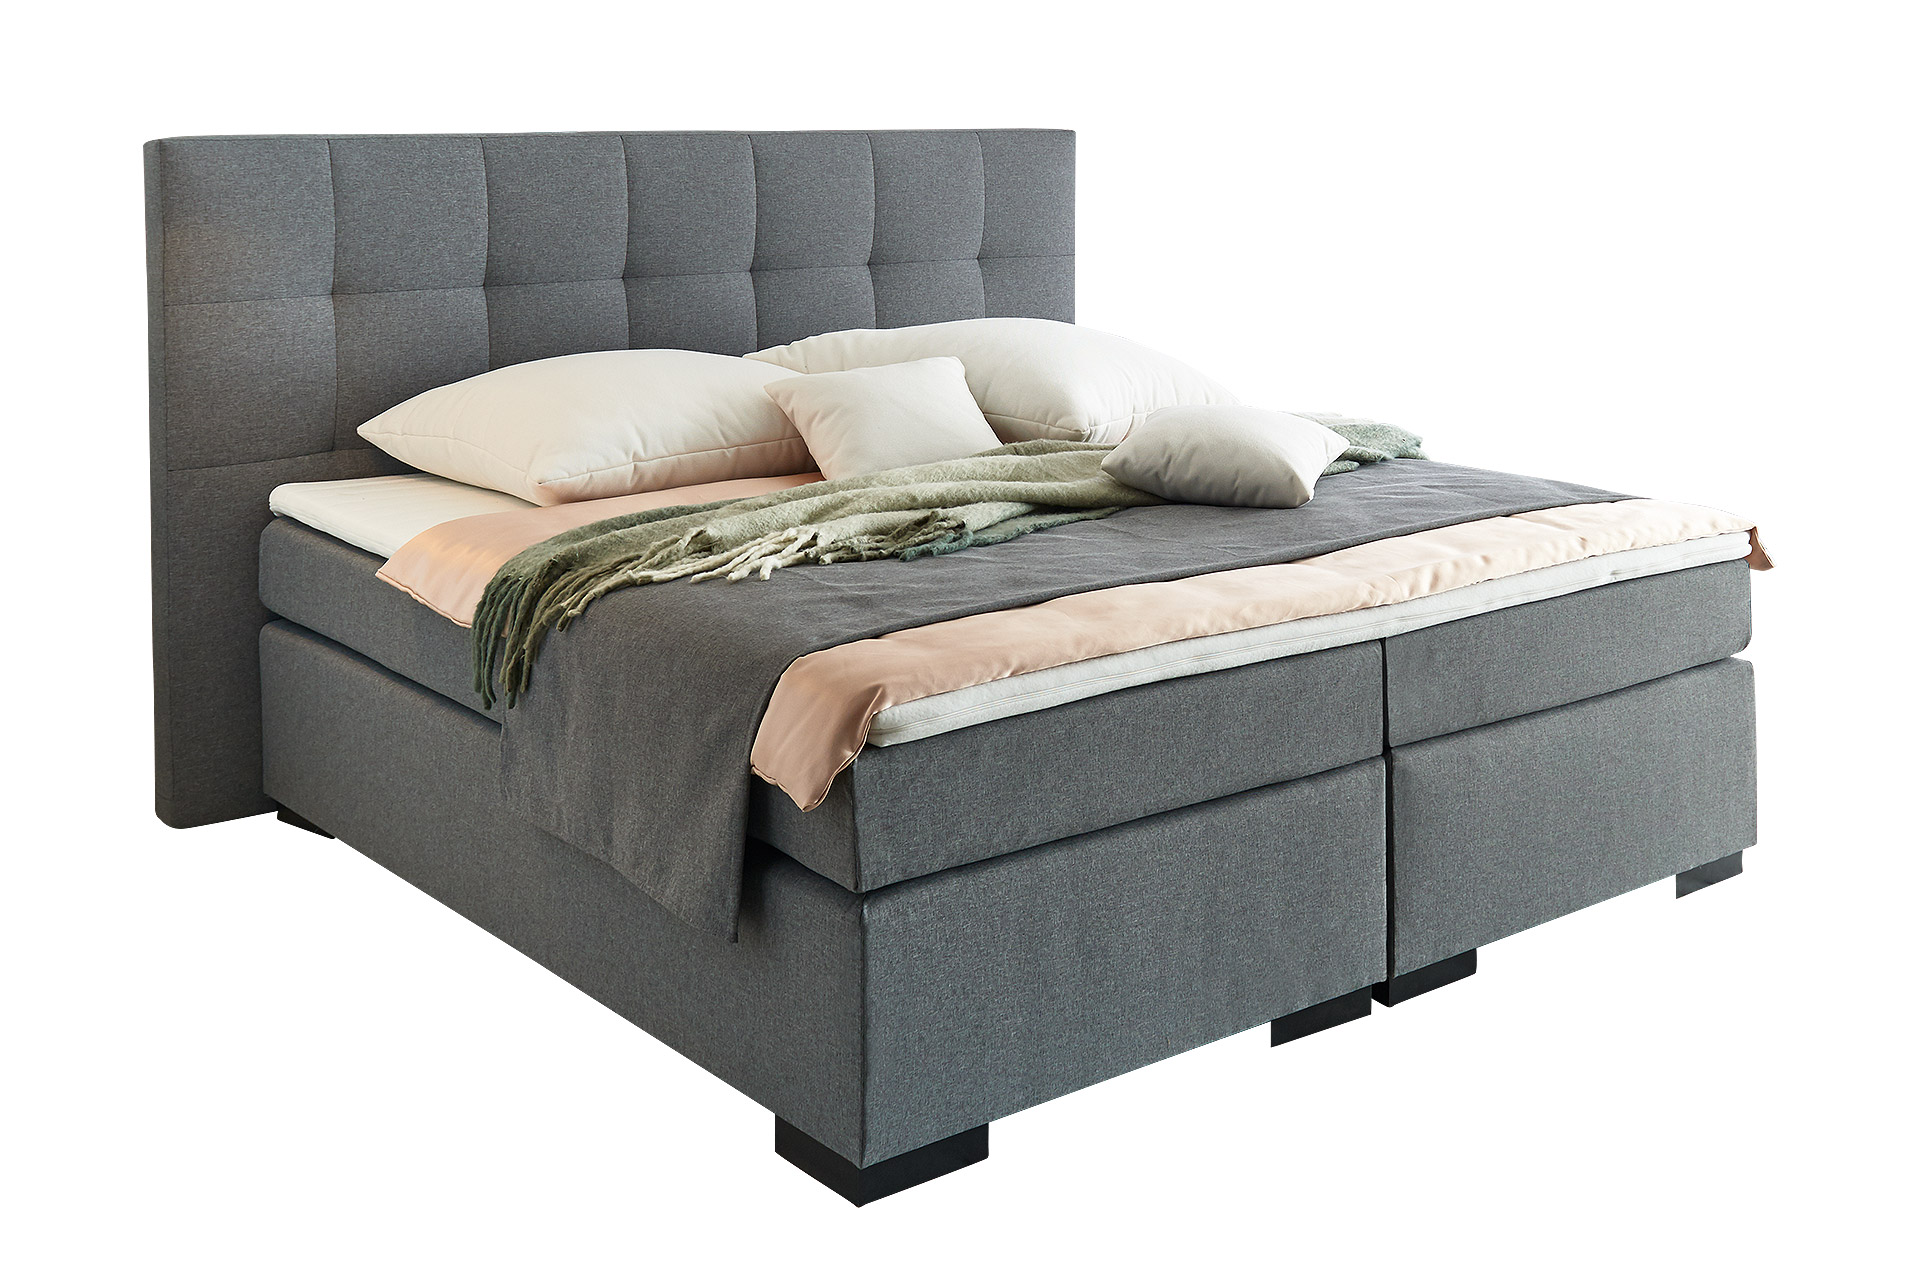 Belvandeo monaco amerikanisches boxspring bett 7 zonen for Betthusse boxspring bett